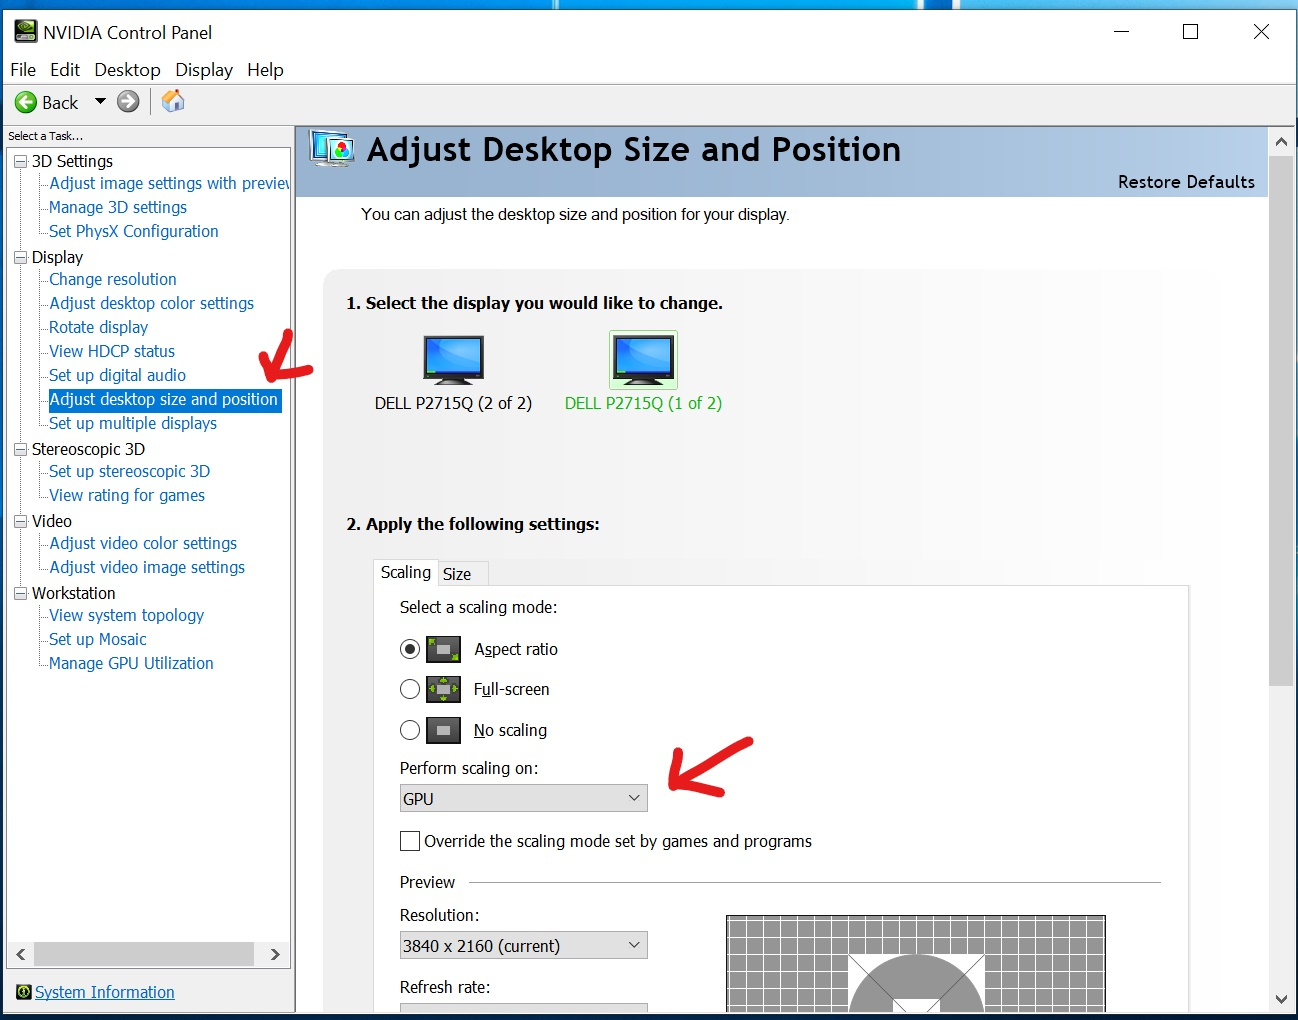 layout messed up after last update - Page 2 - Autodesk